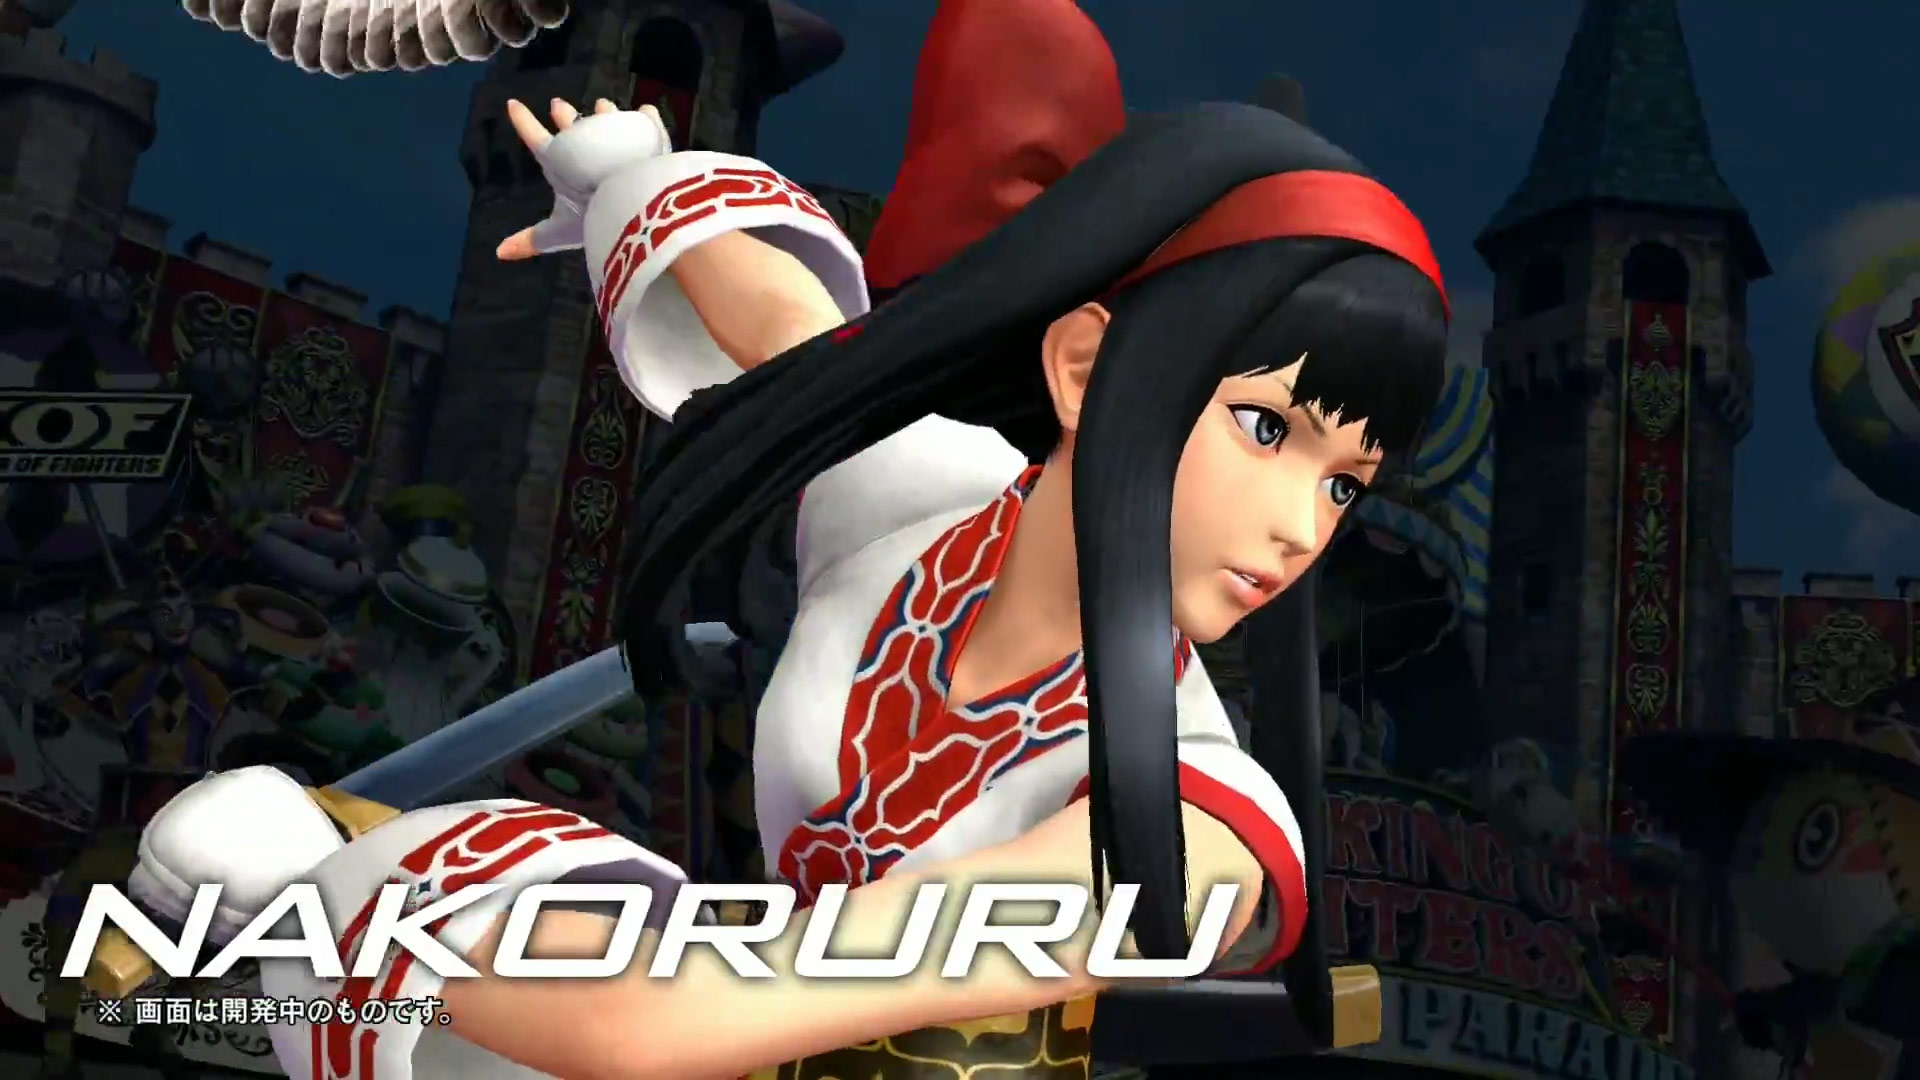 Kof XIV is here! With 3d models    The Vision